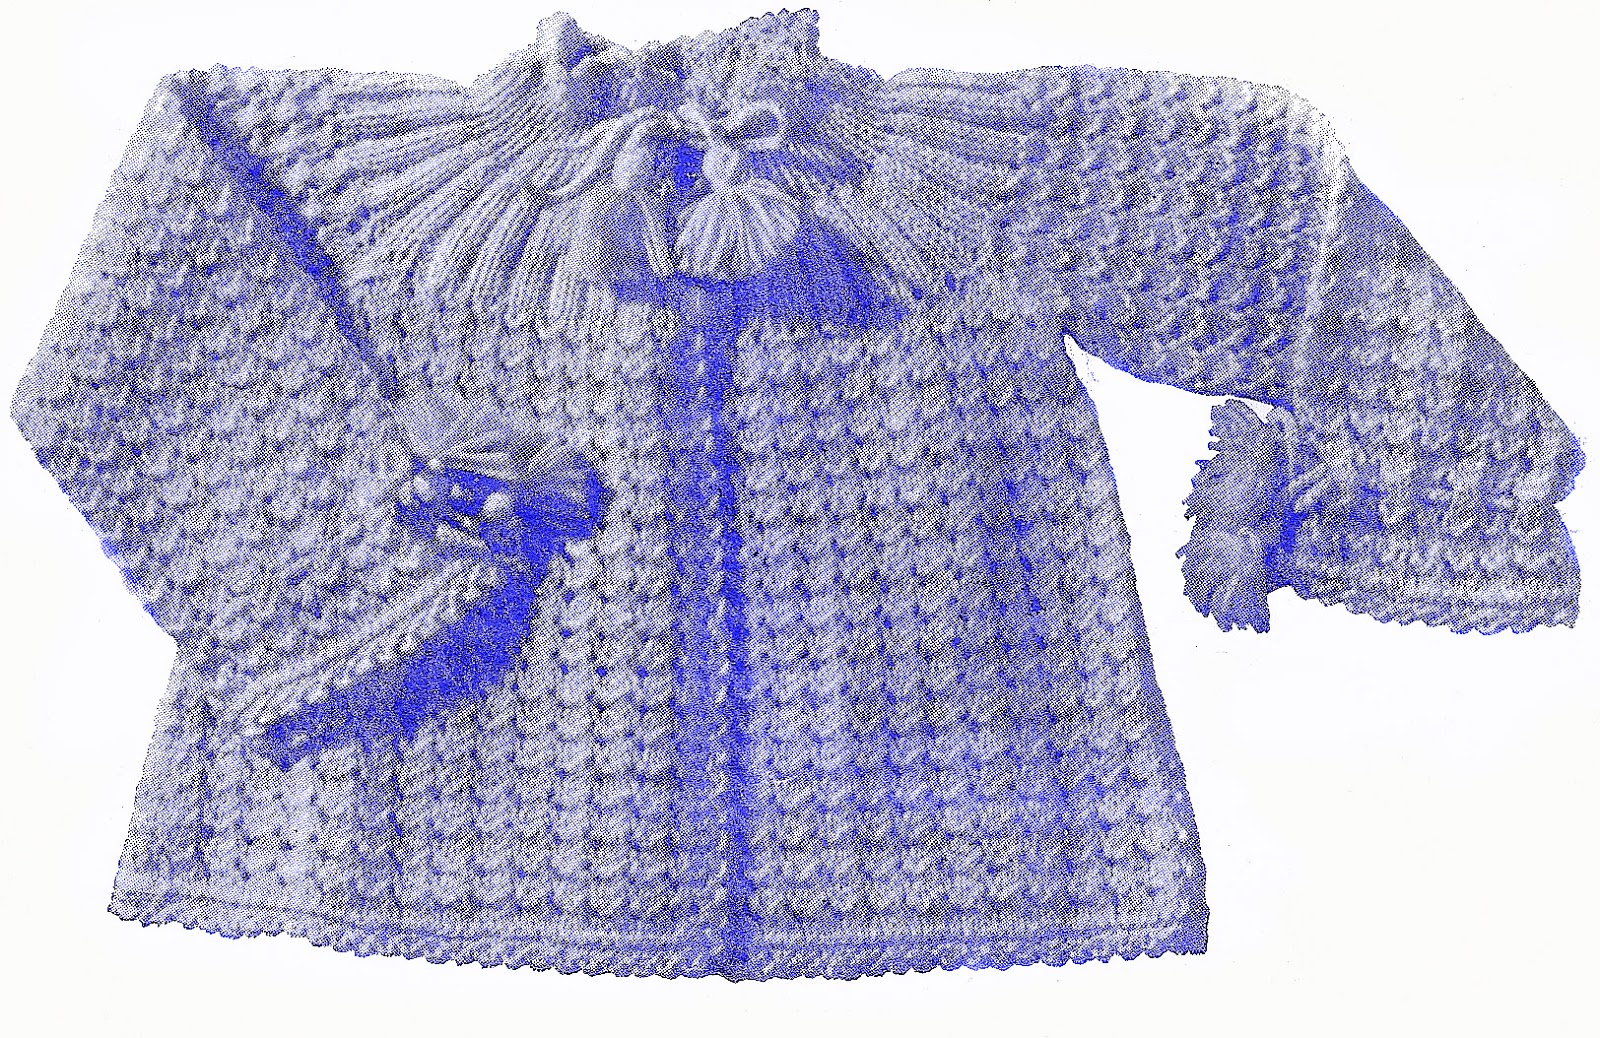 Baby Jacket Knitting Pattern Australia - Cardigan With Buttons